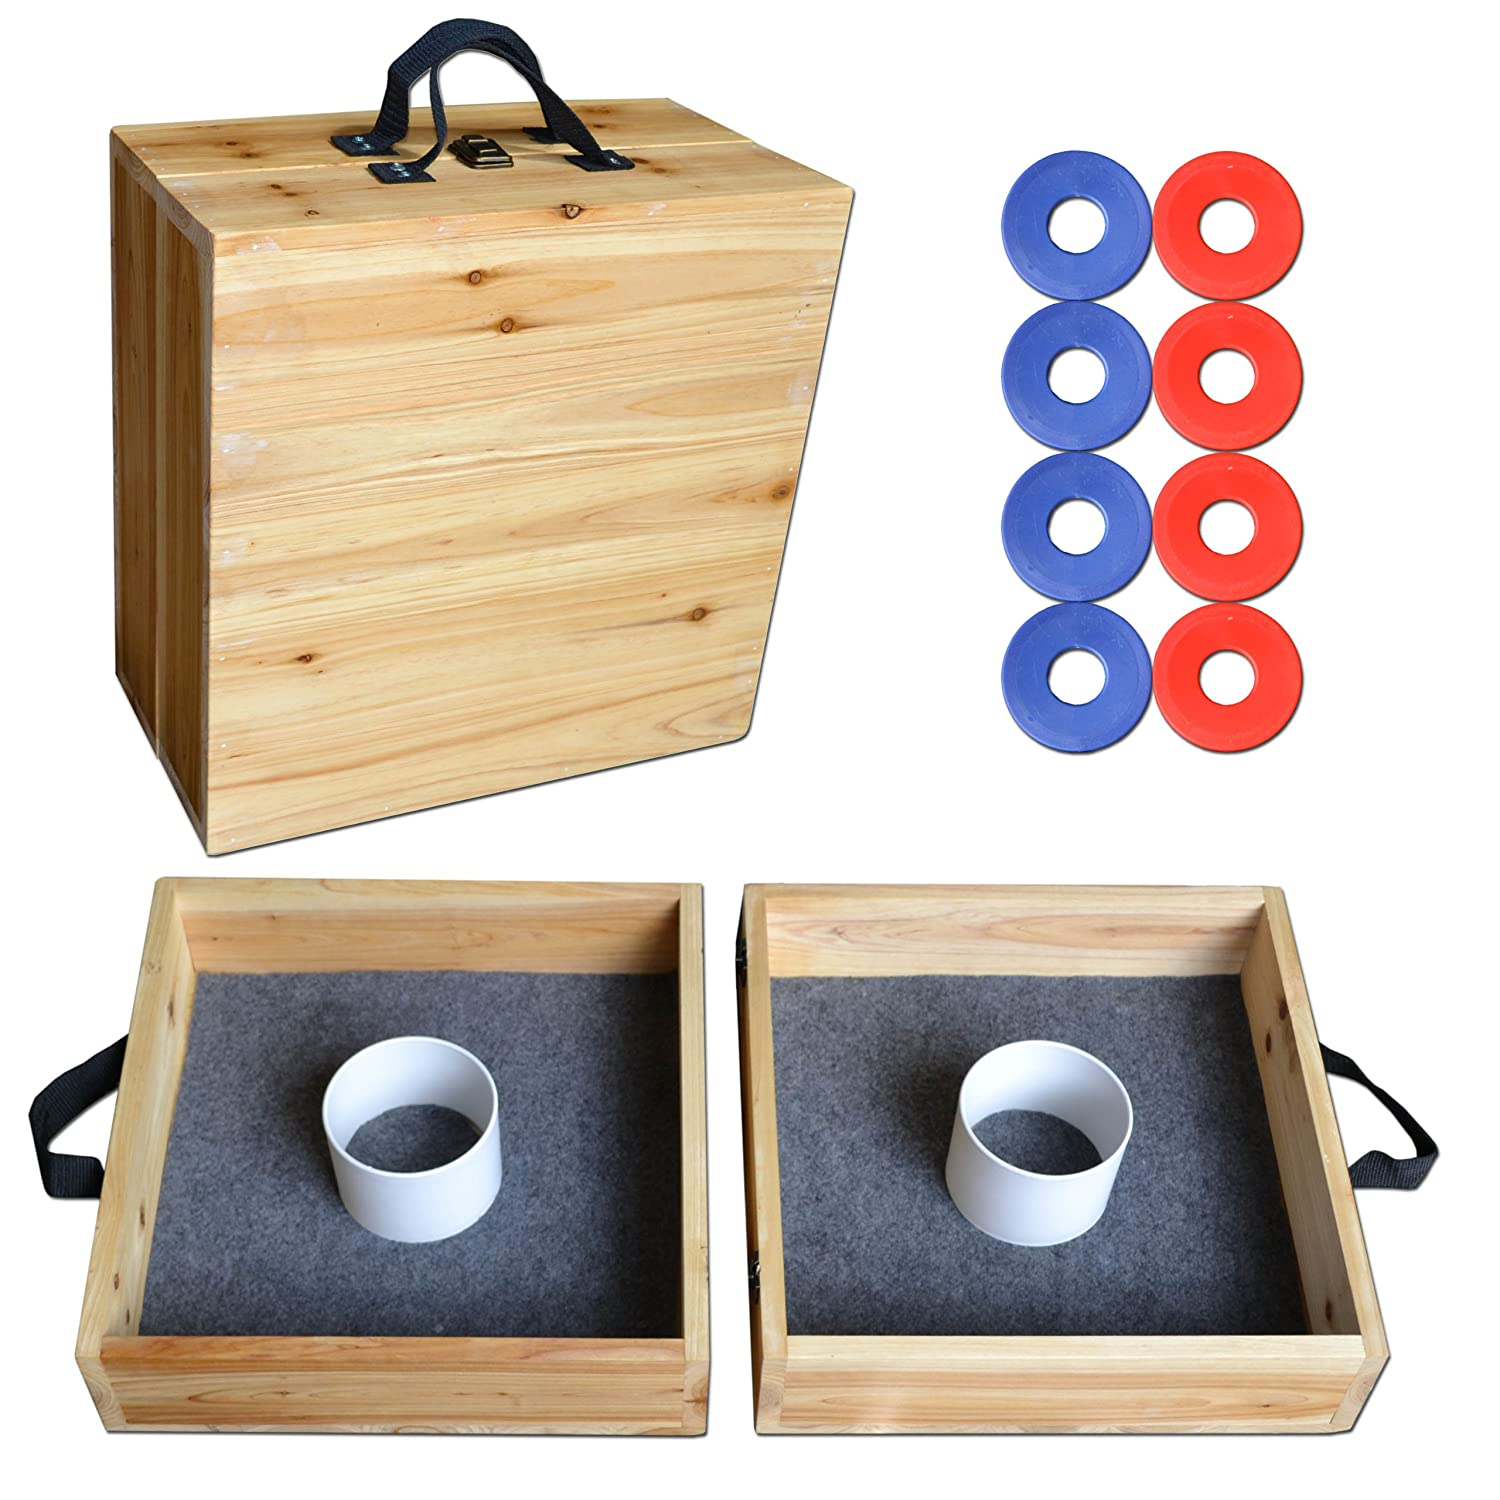 GoSports Pine Wood Washer Toss Game Set GoPong Washer Toss WT-01-Wood